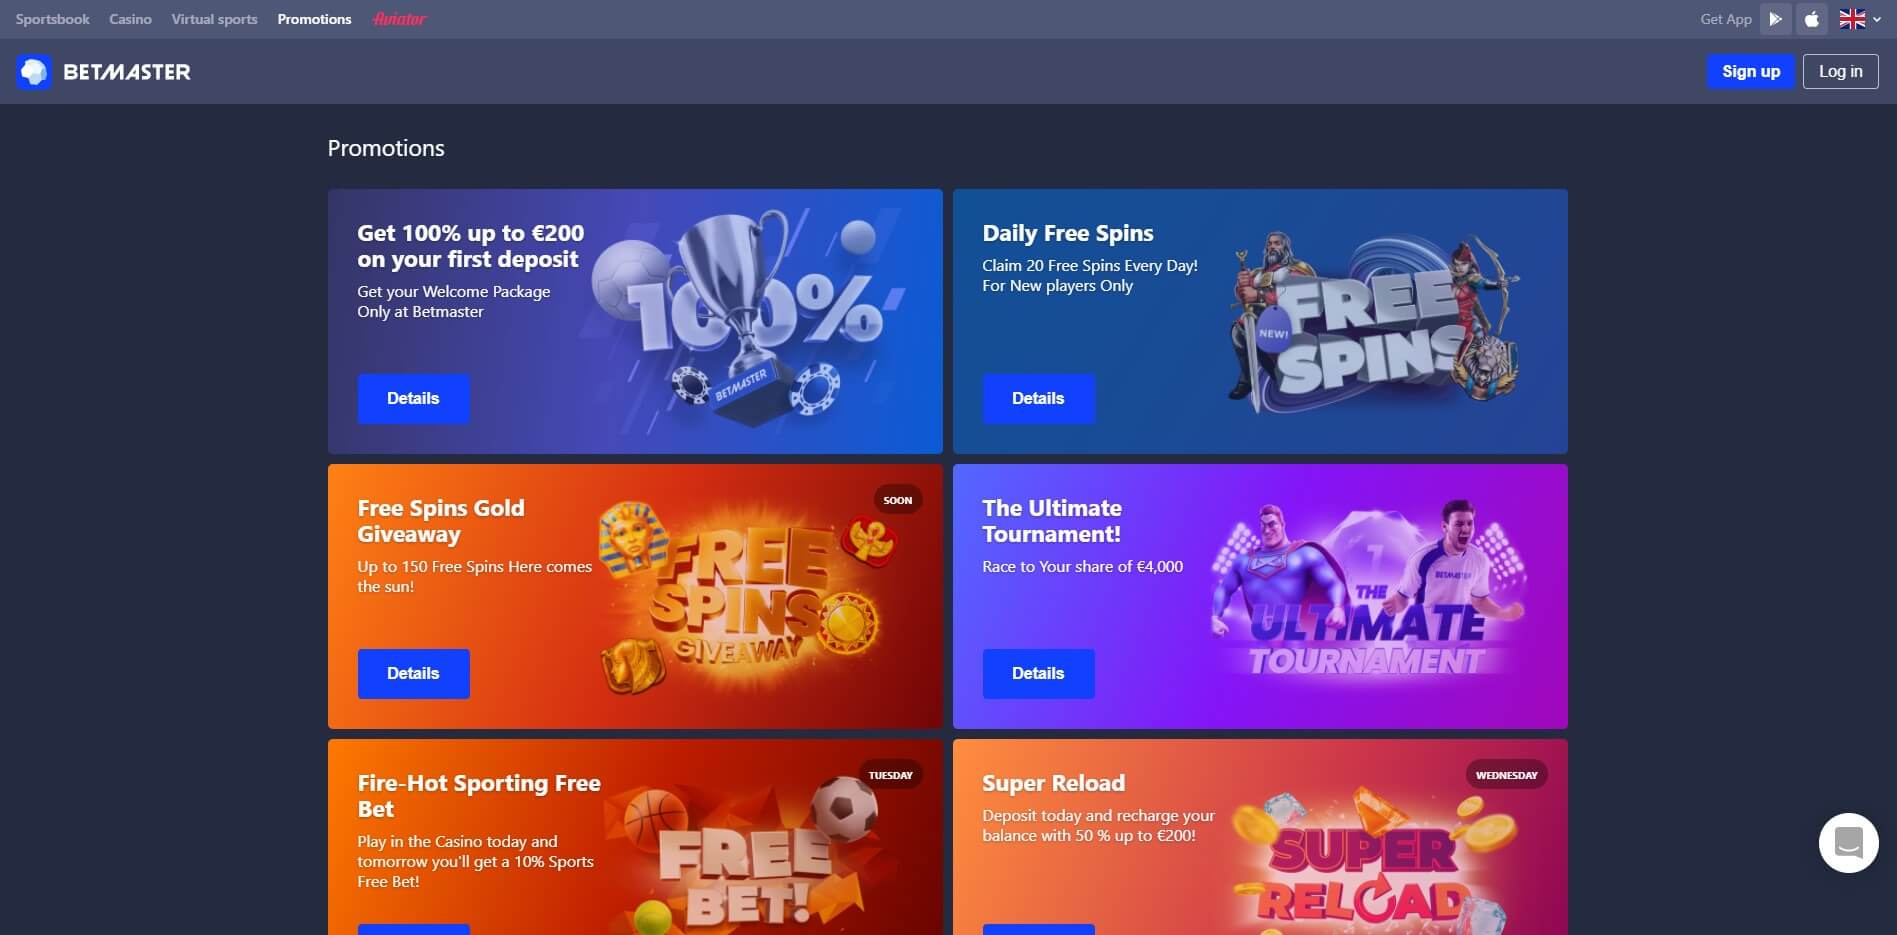 Promotions at BetMaster CAsino